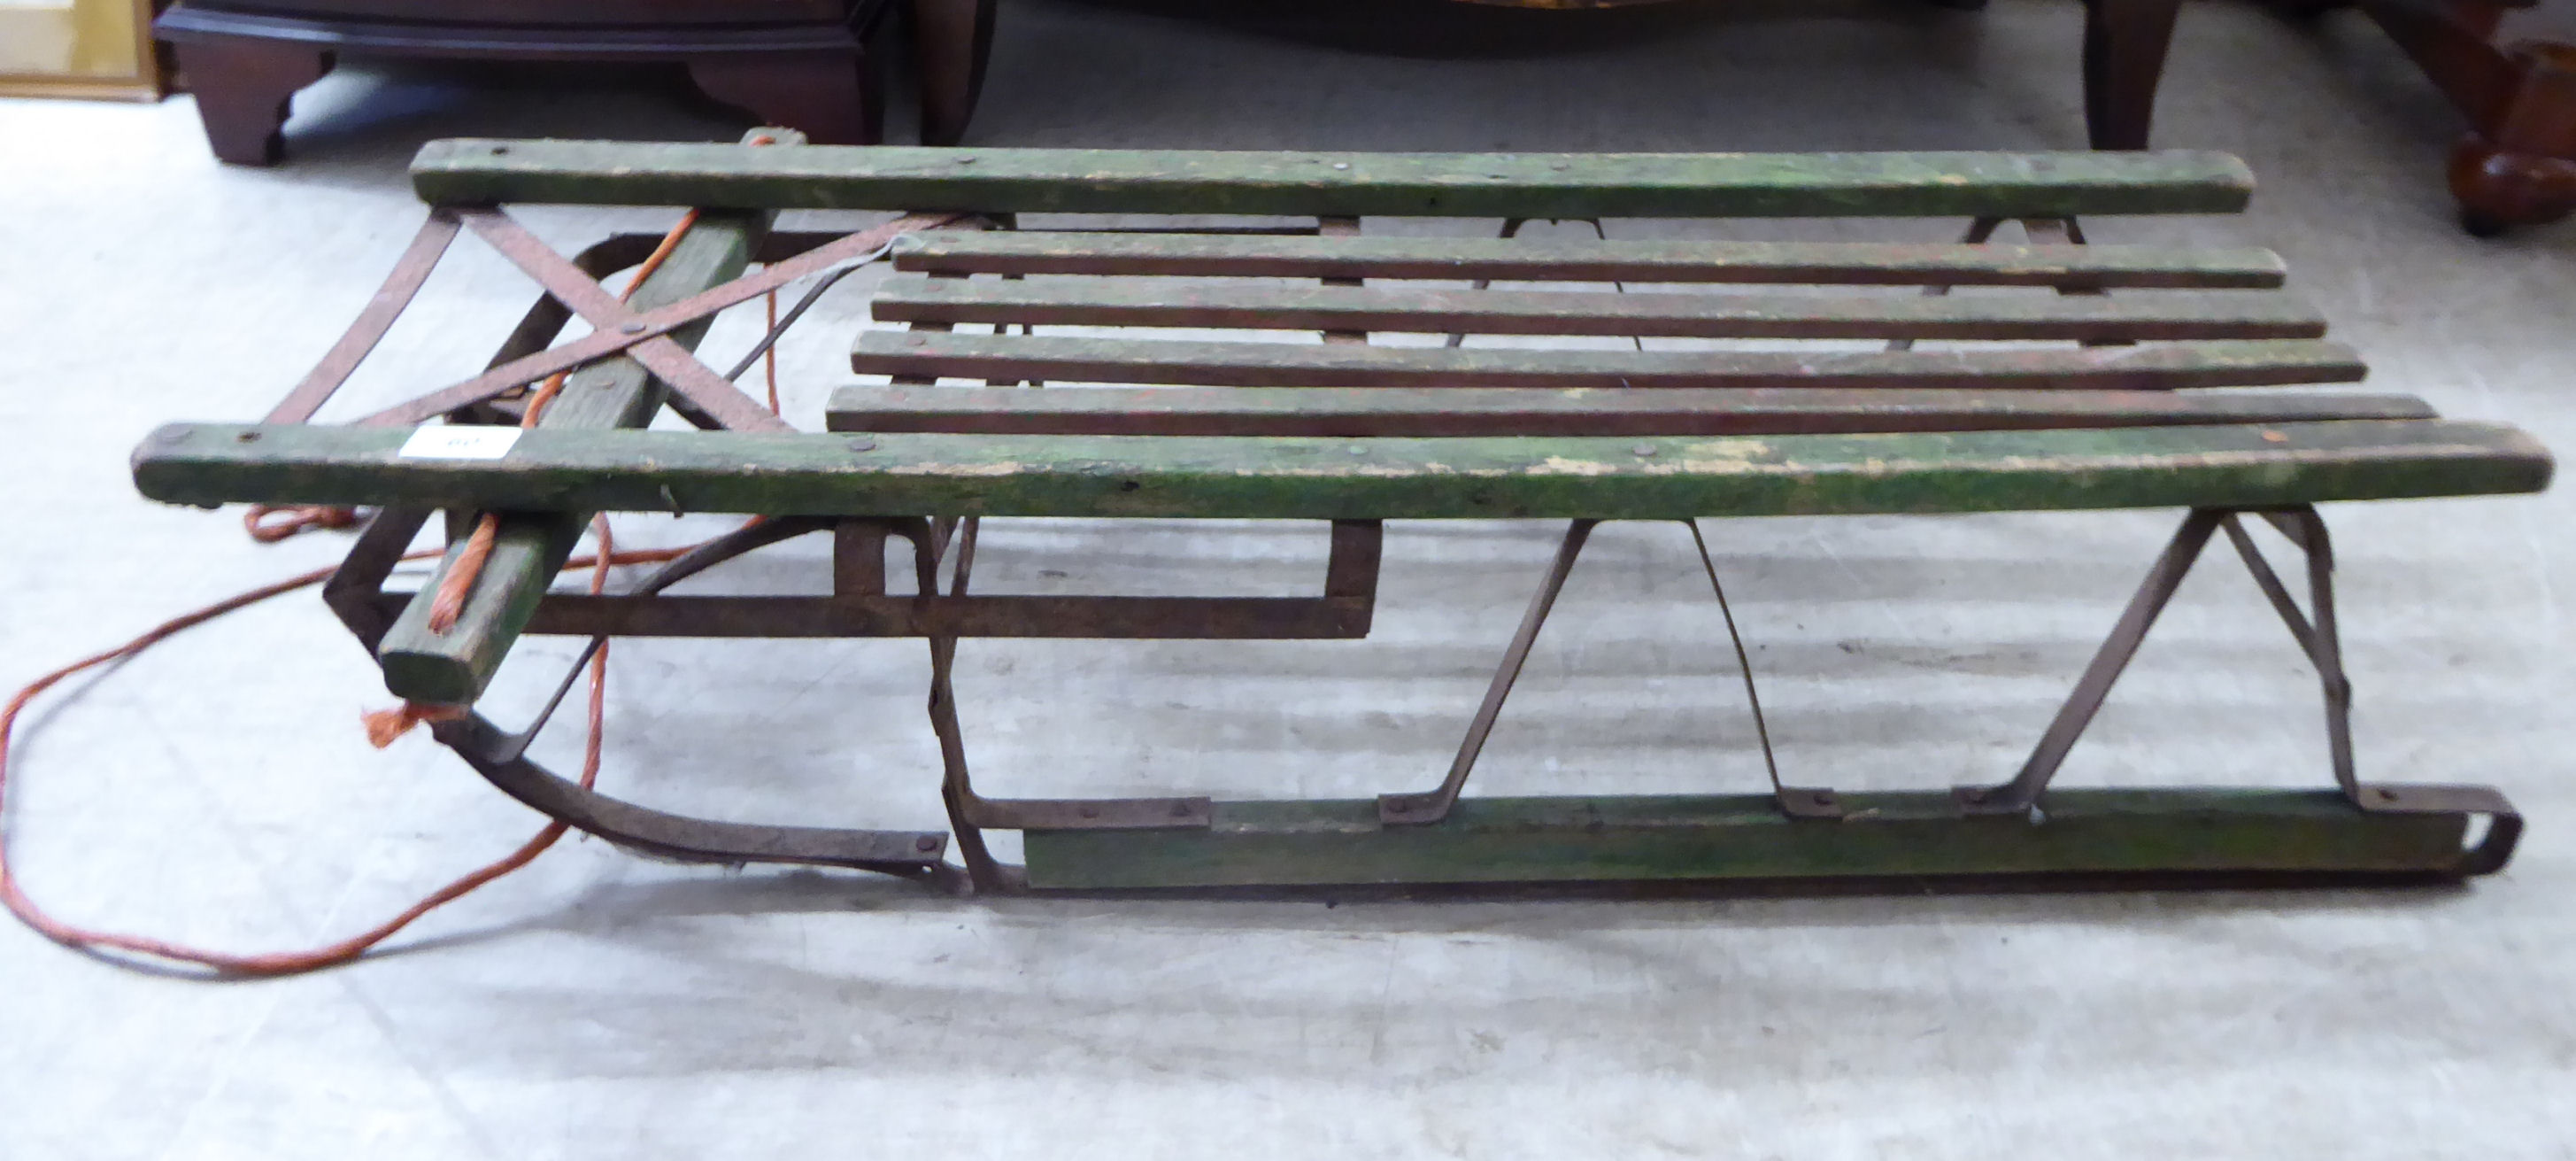 Lot 60 - A 'vintage' wooden sledge on metal runners RSF